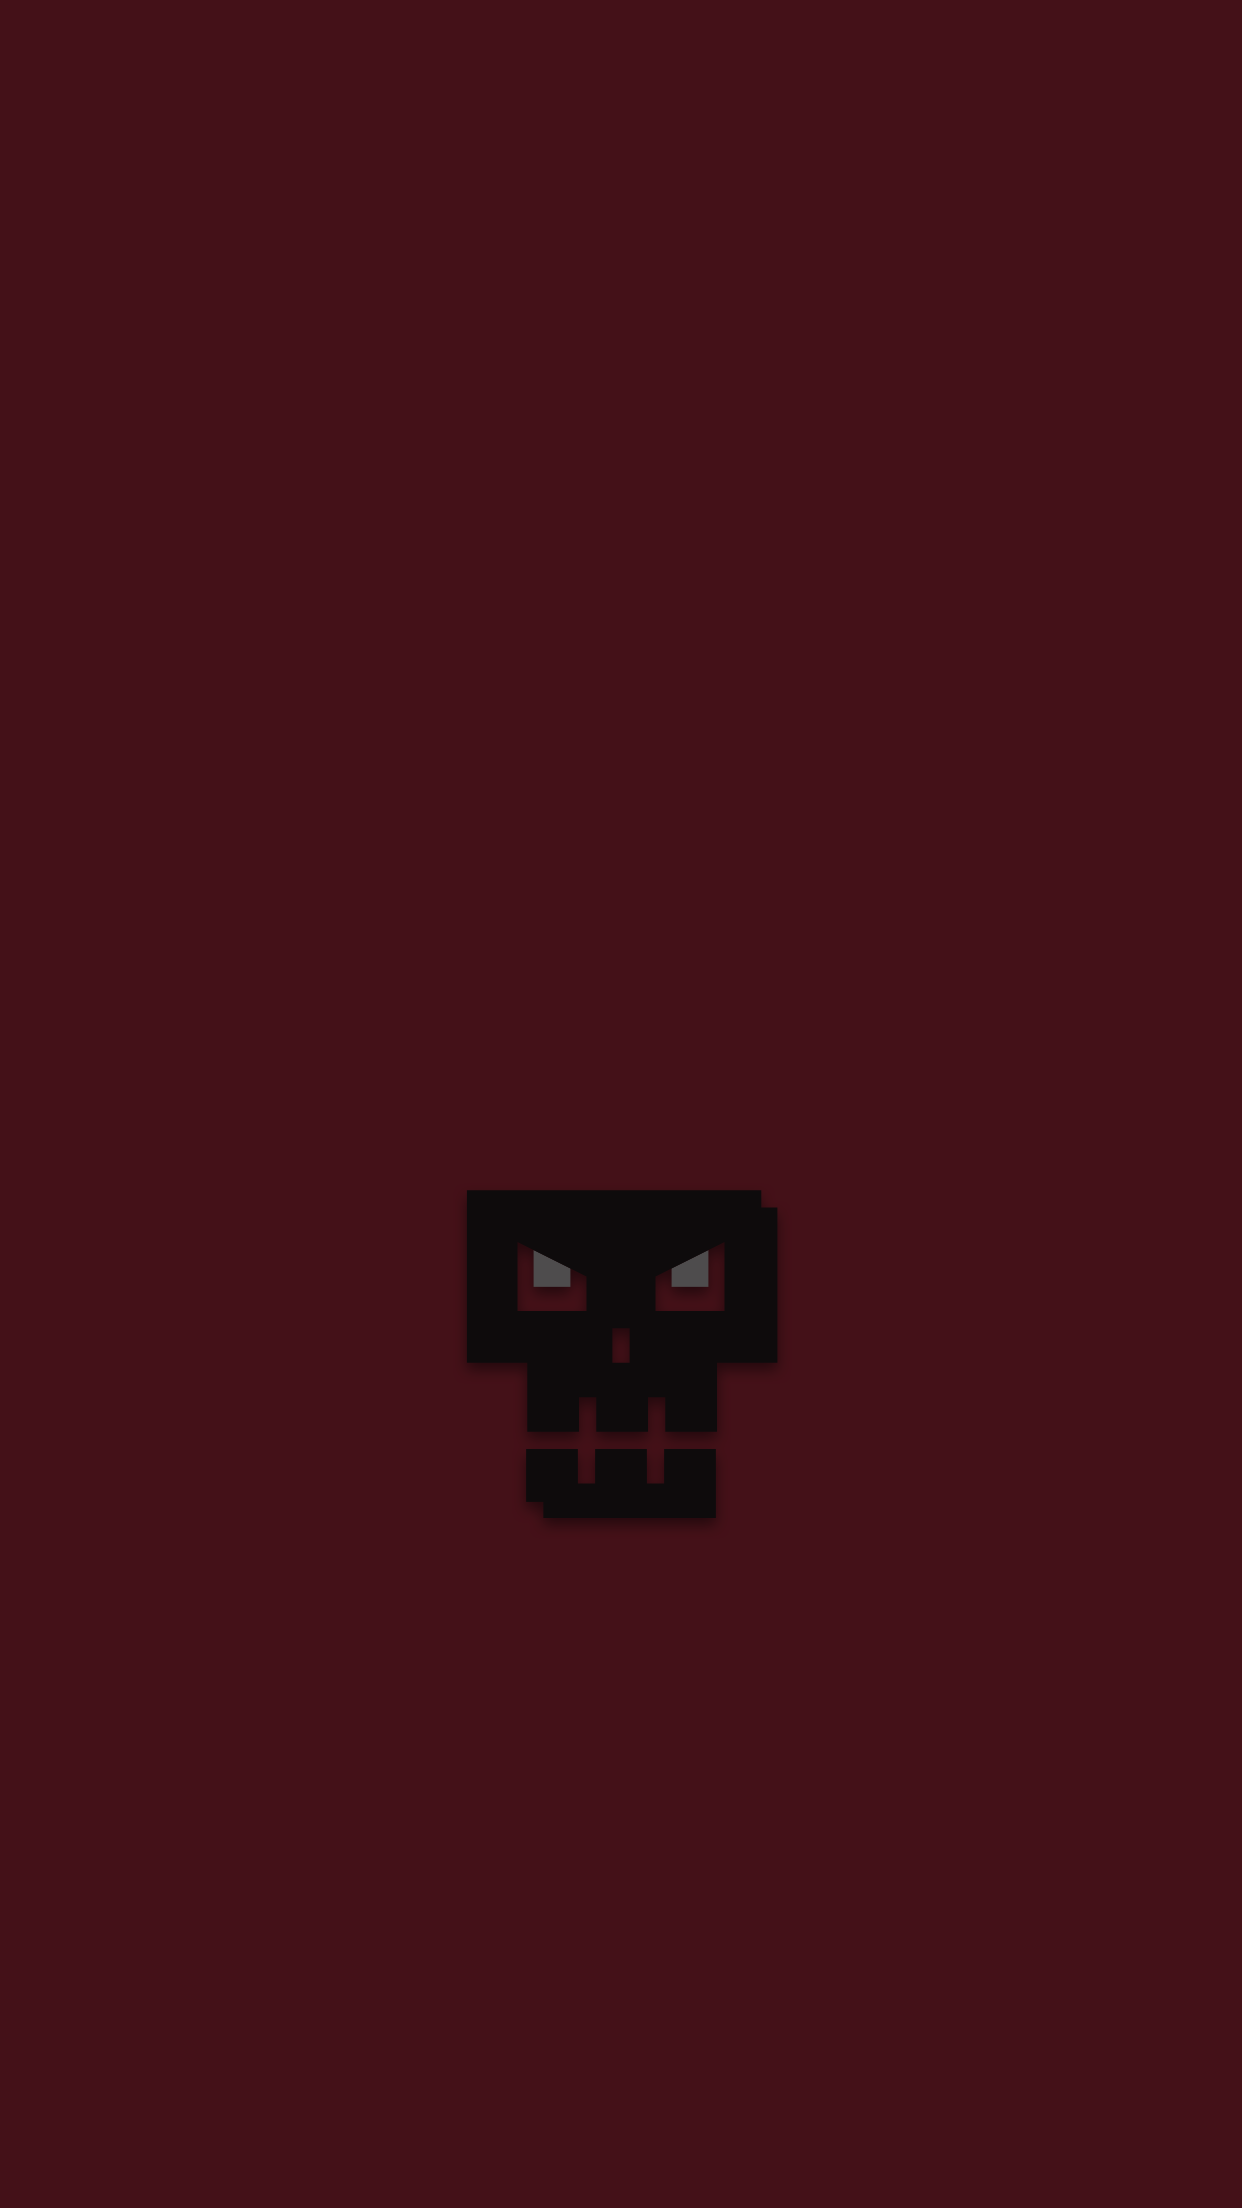 Skullson Wallpaper - Home Screen